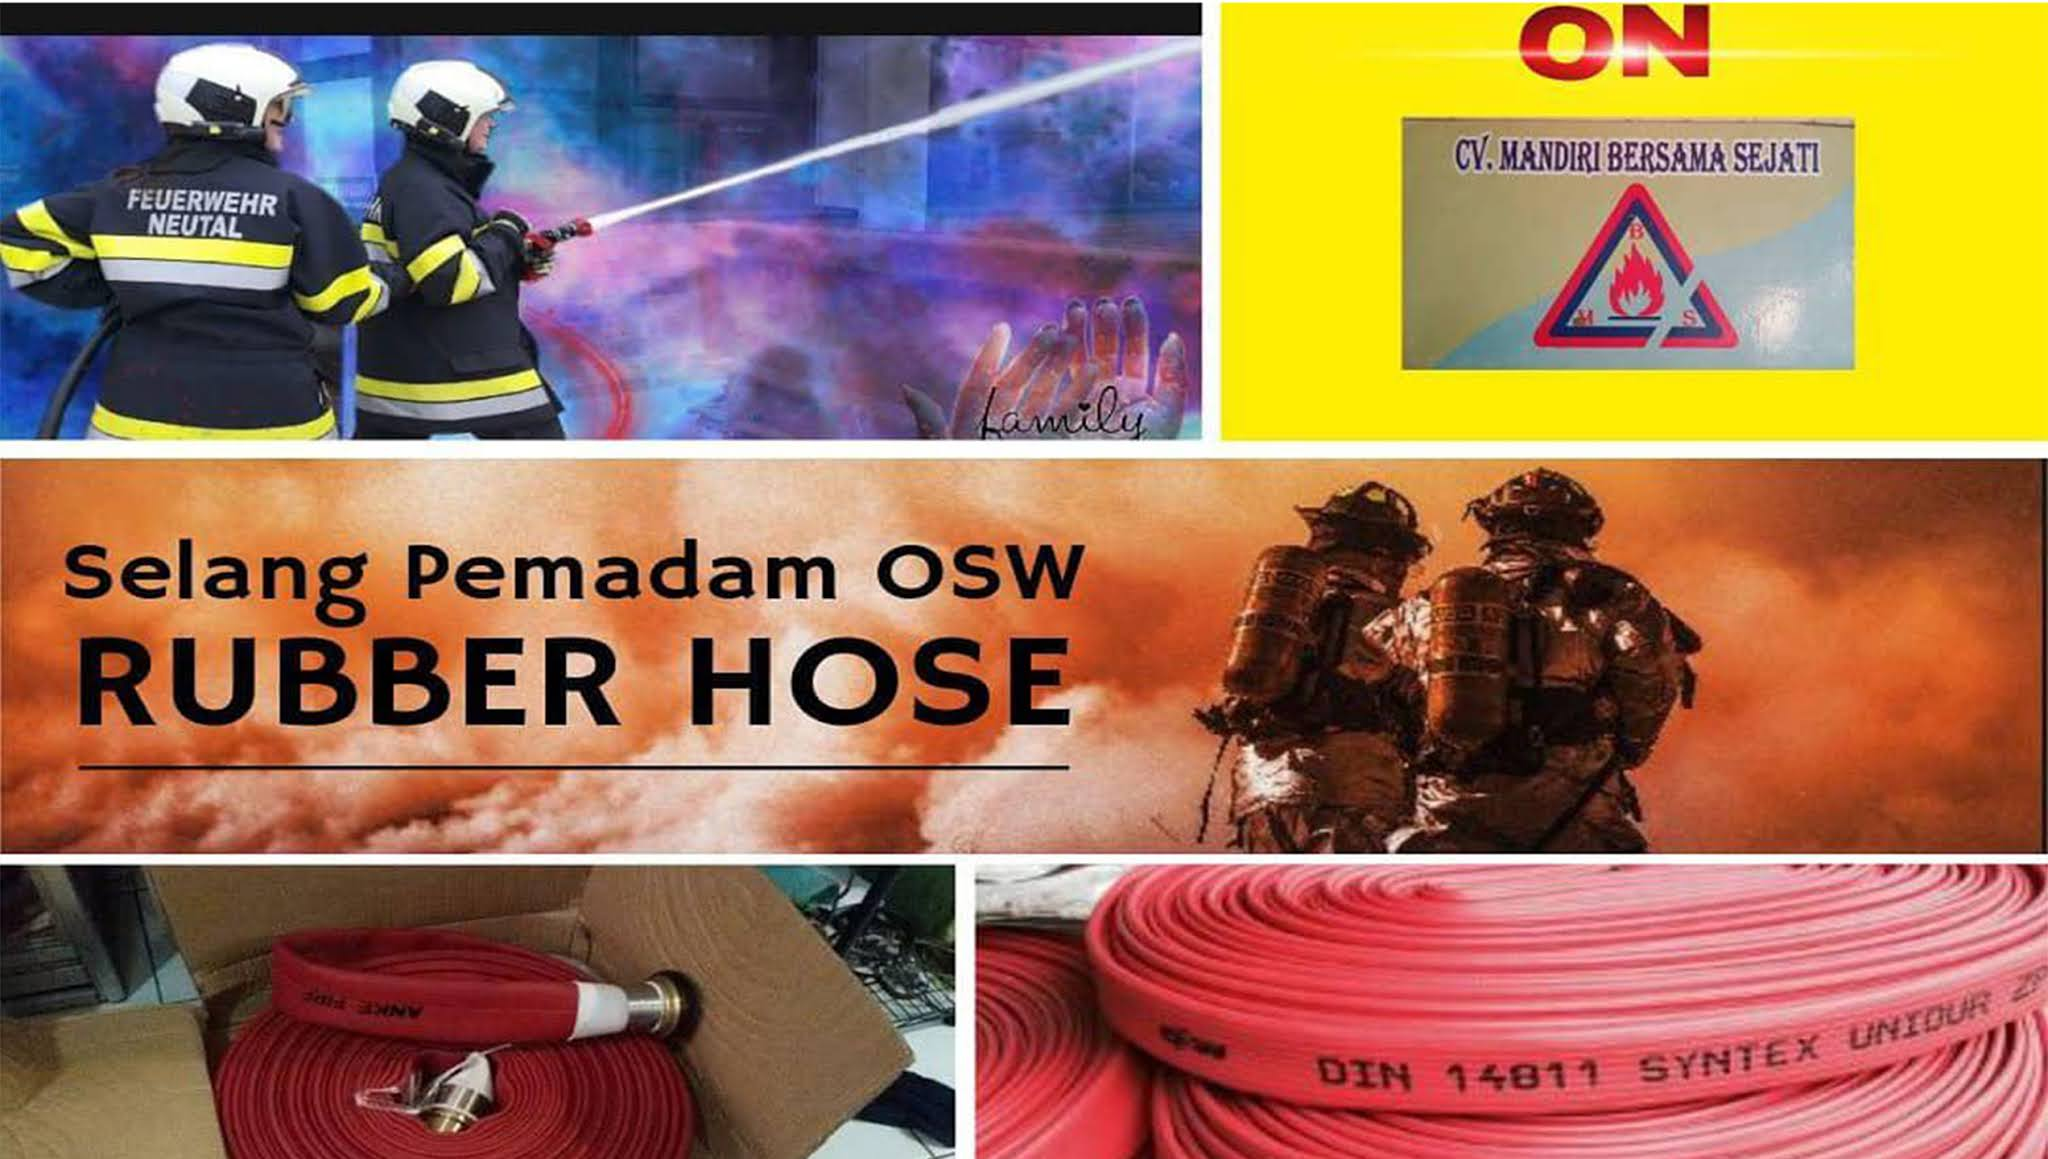 fire hose rubber osw, rubber osw fire hose, rubber hose, oswal rubber industries, rubber roofing oswestry, harga selang pemadam, harga selang pemadam kebakaran, harga selang pemadam germany, harga selang pemadam karet, selang pemadam osw